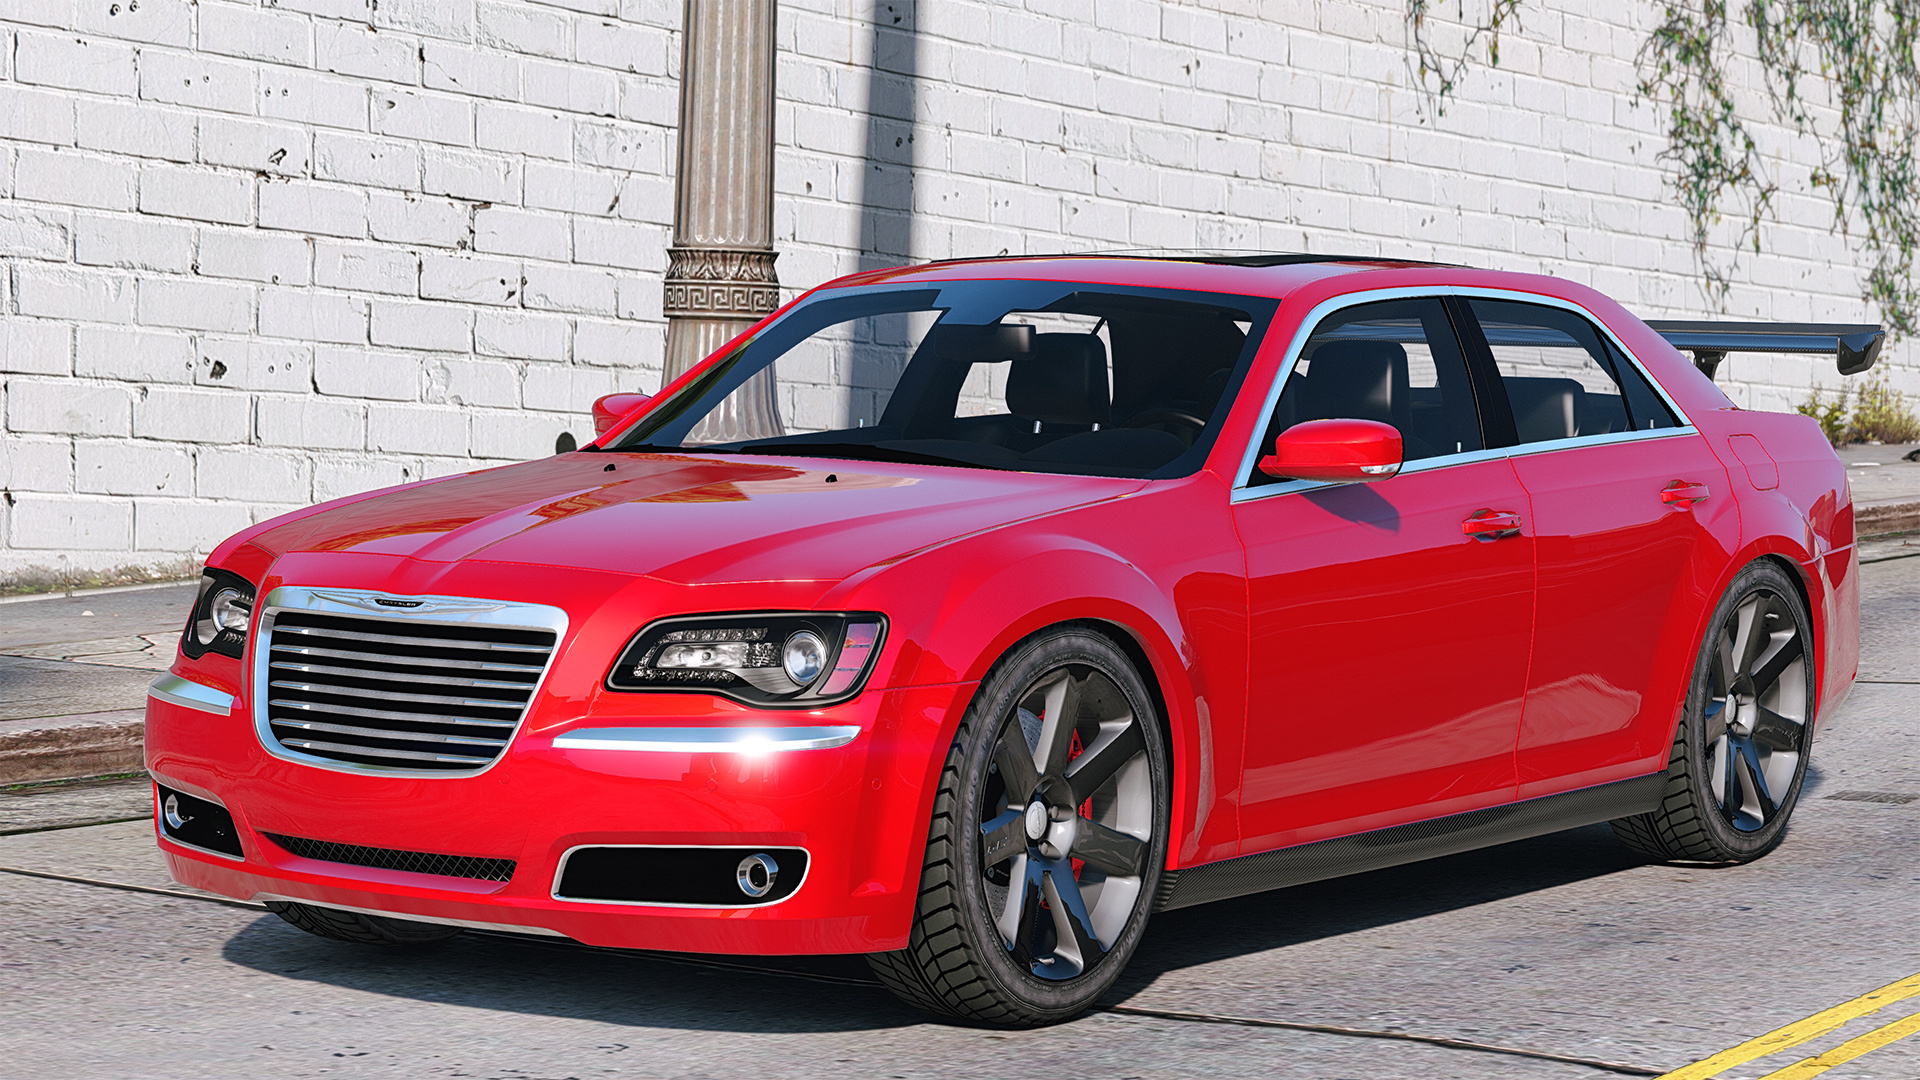 Chrysler 300 Srt8 : 2012 chrysler 300 srt8 add on replace tuning gta5 ~ Medecine-chirurgie-esthetiques.com Avis de Voitures